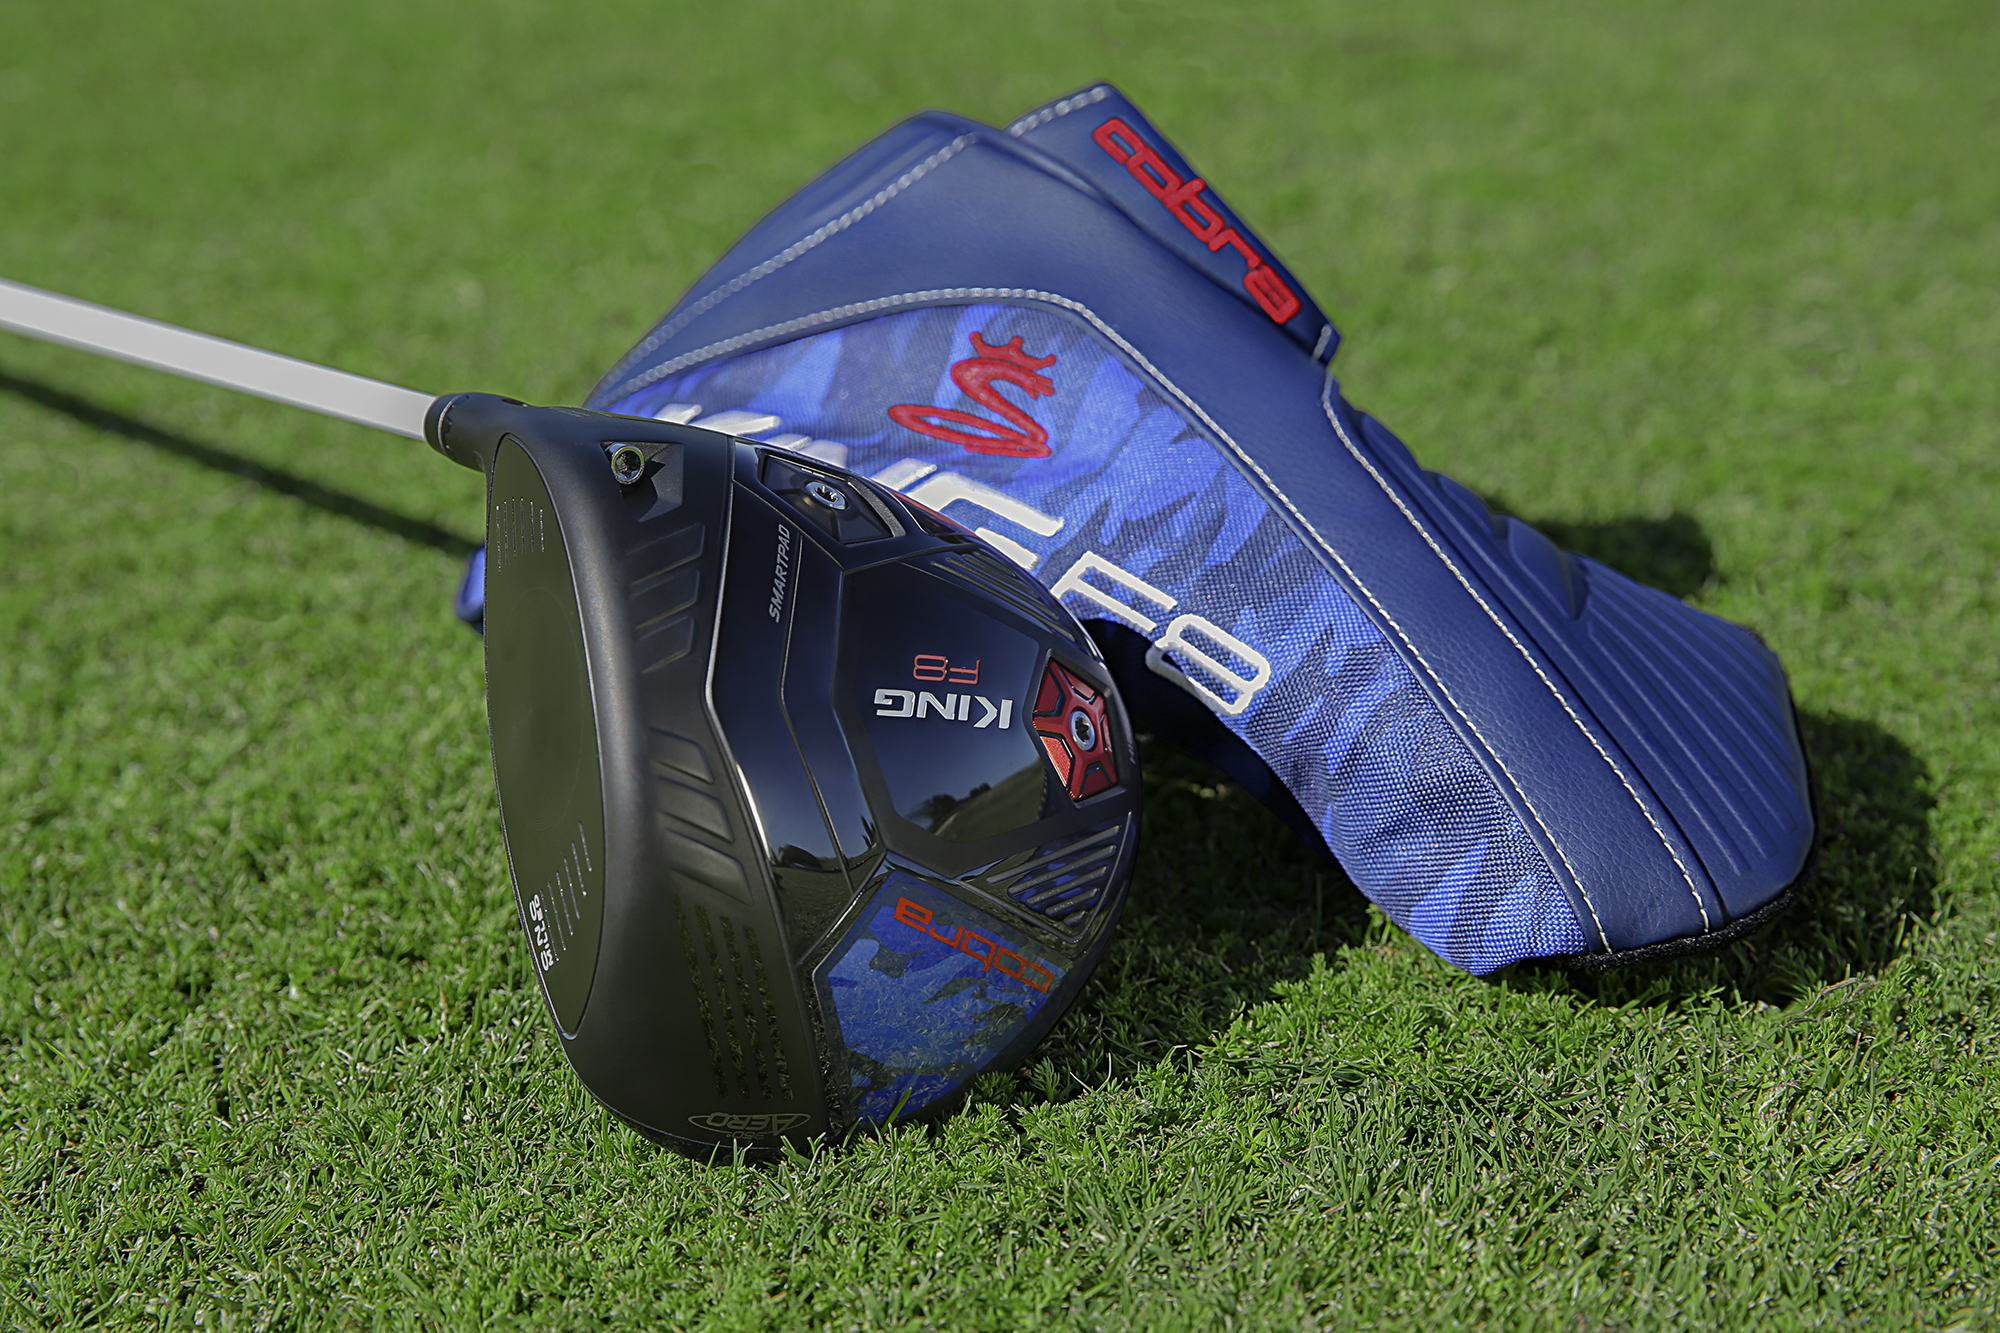 9d9a5465f664 The King F8 Volition America drivers come in two colorways. The first  a  Blue Camo pattern